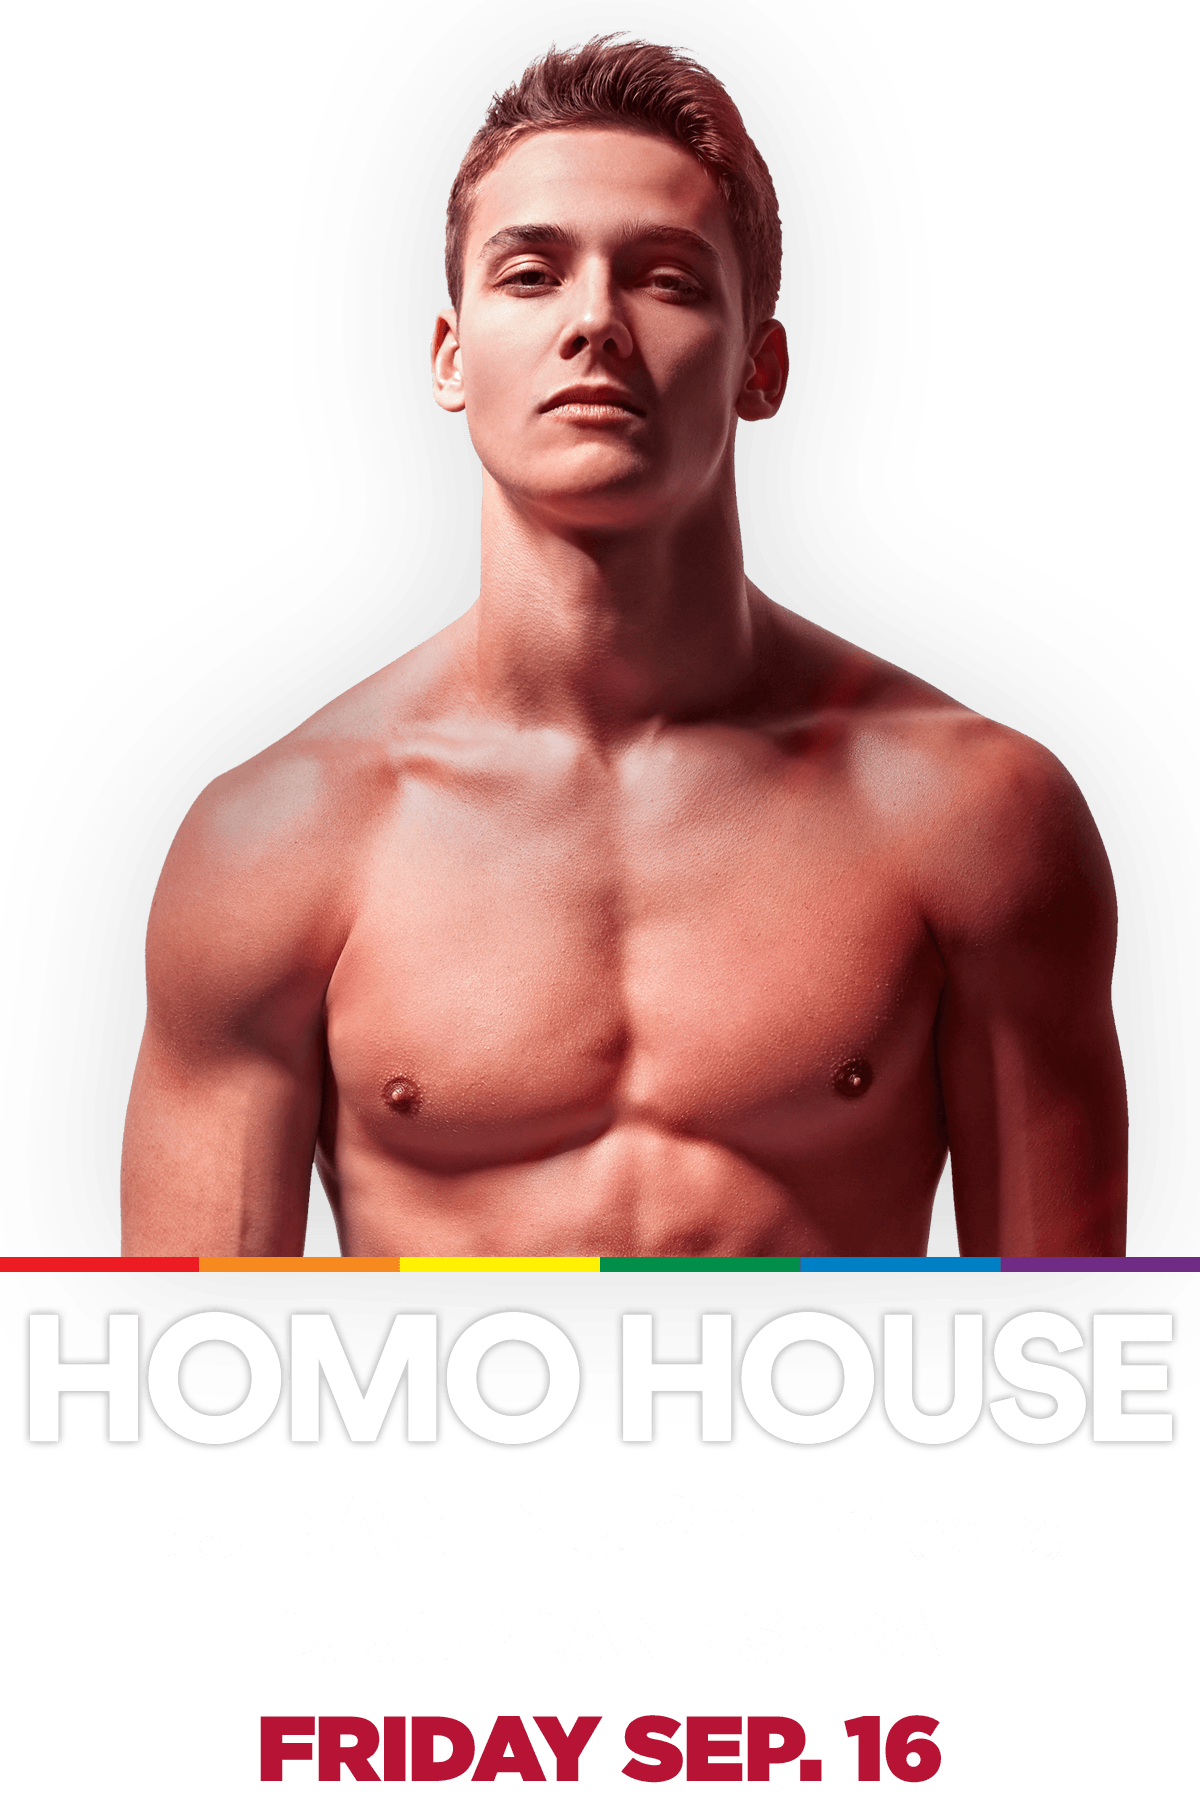 Homo House at the Monte Cristo Room